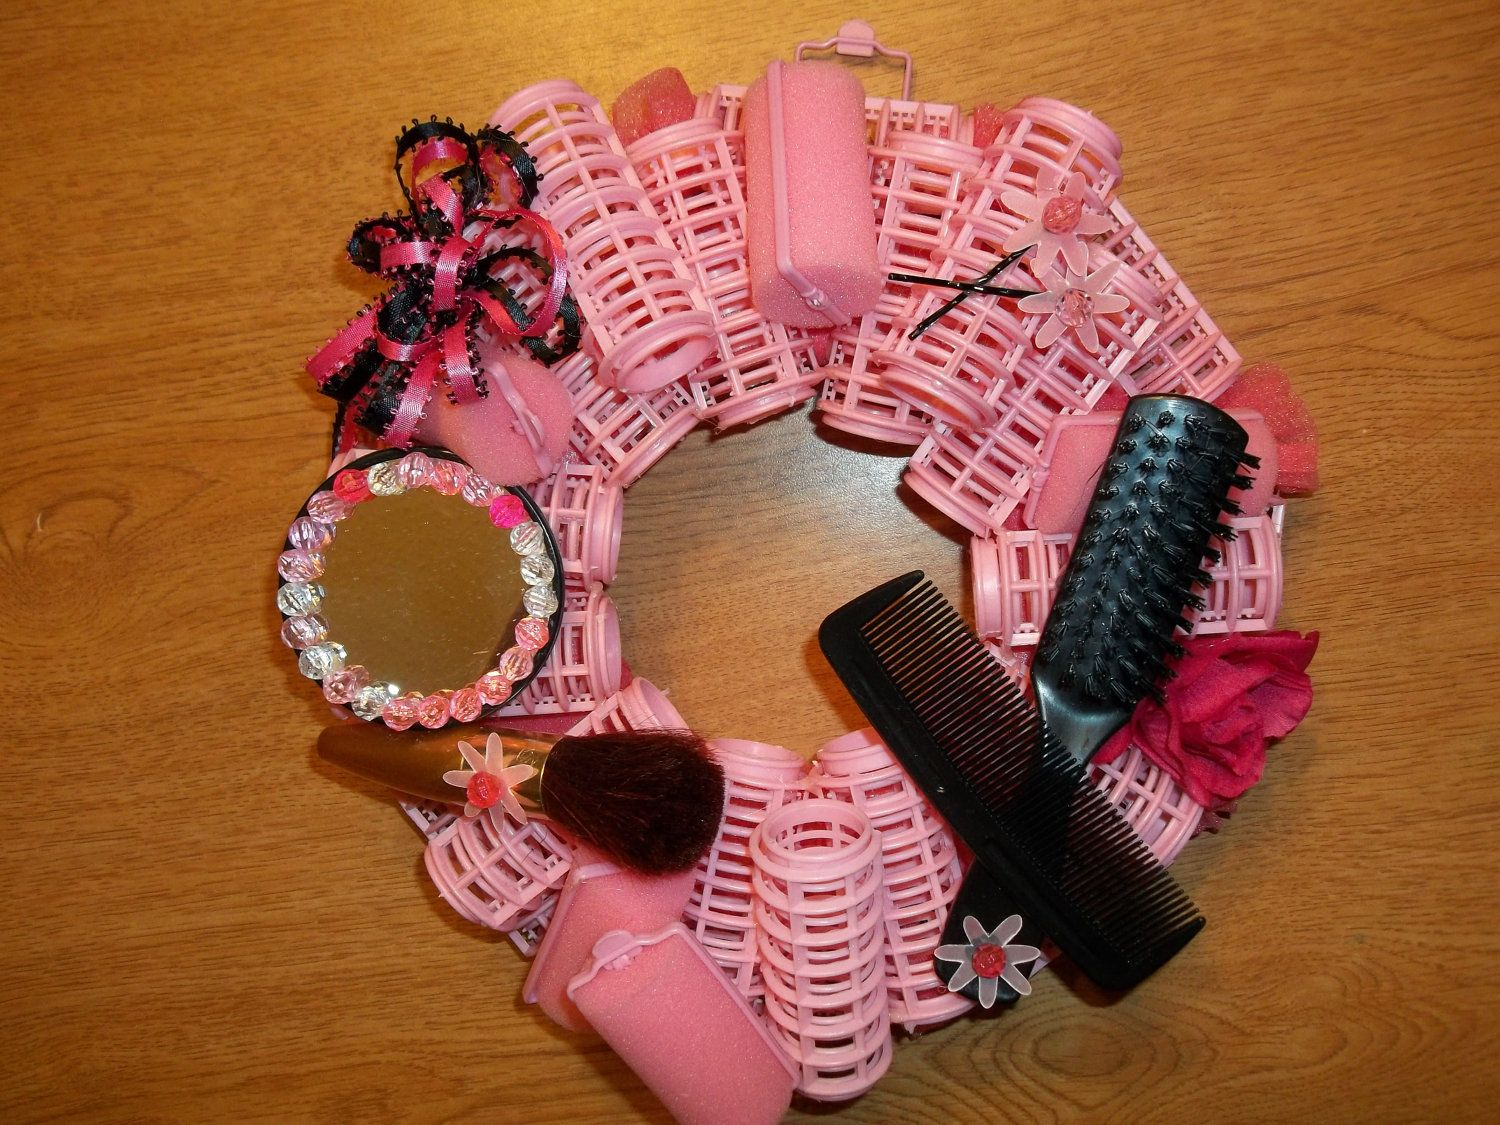 Hair stylist christmas ornaments - Wreath Curlers Pink Wreath Pink Black Mirror Beads Ribbon